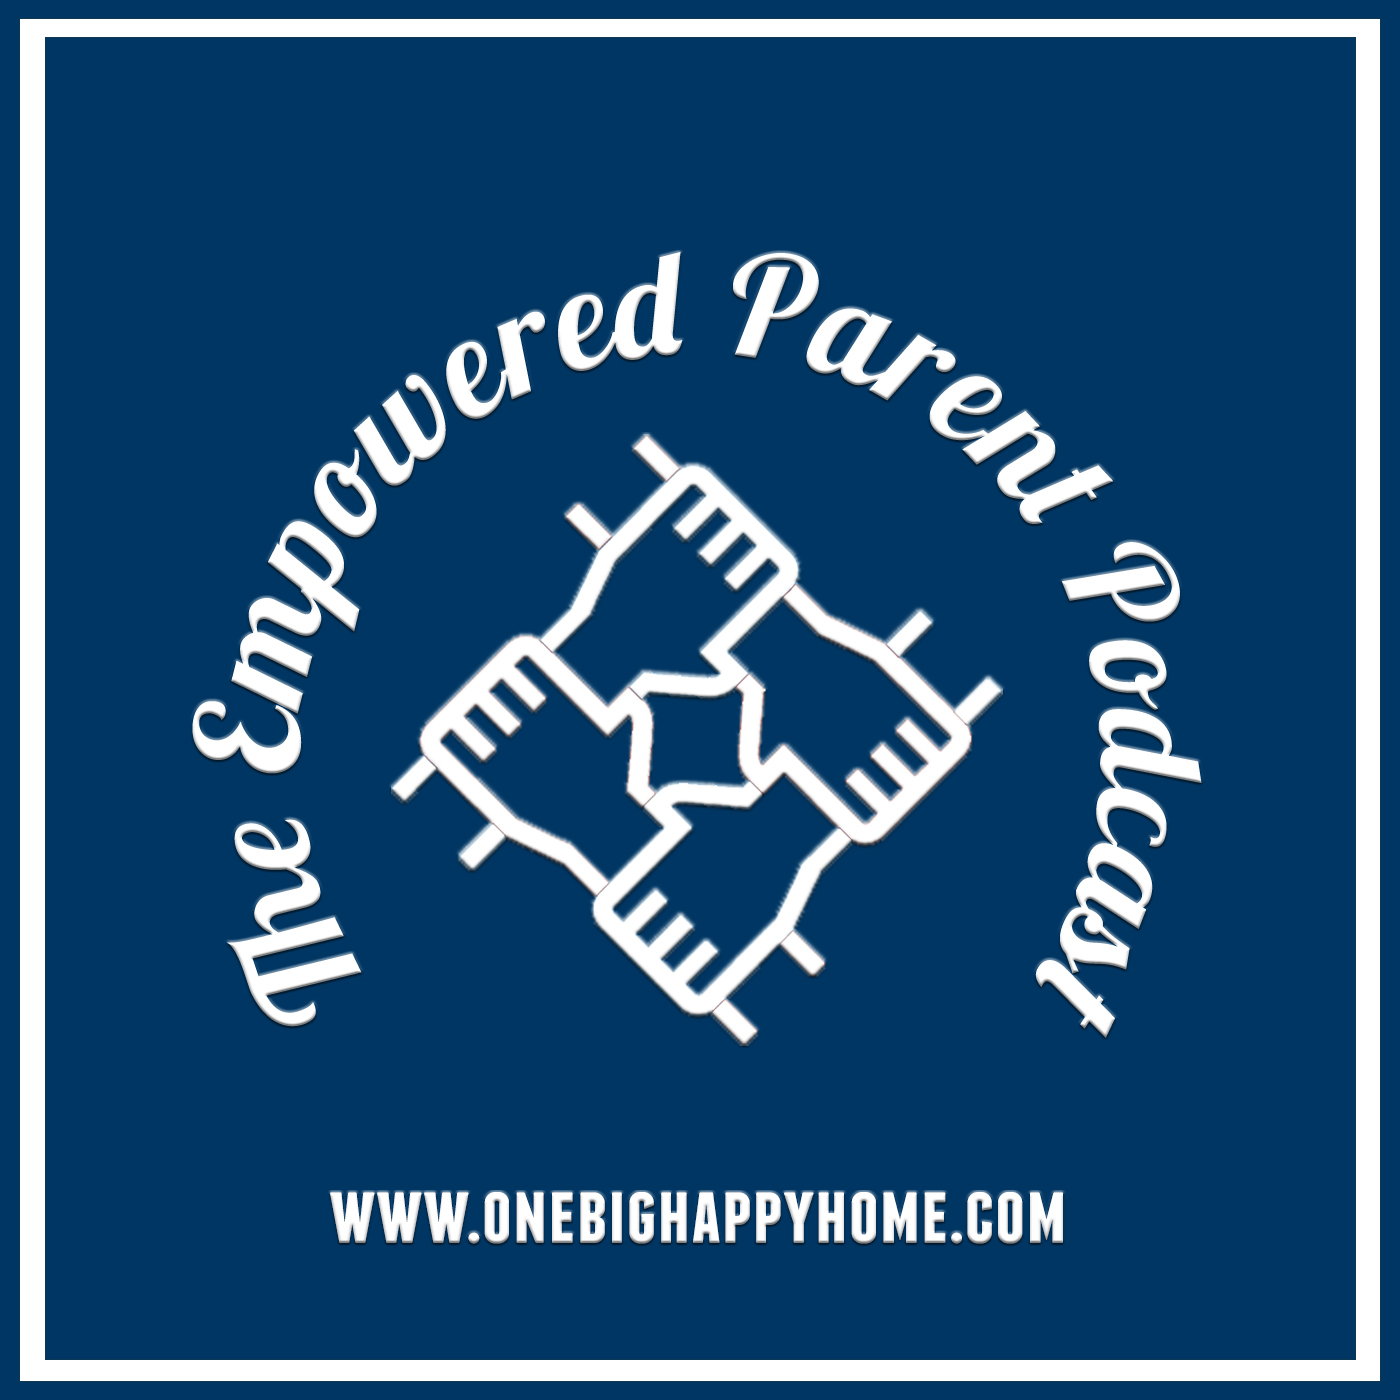 The Empowered Parent Podcast